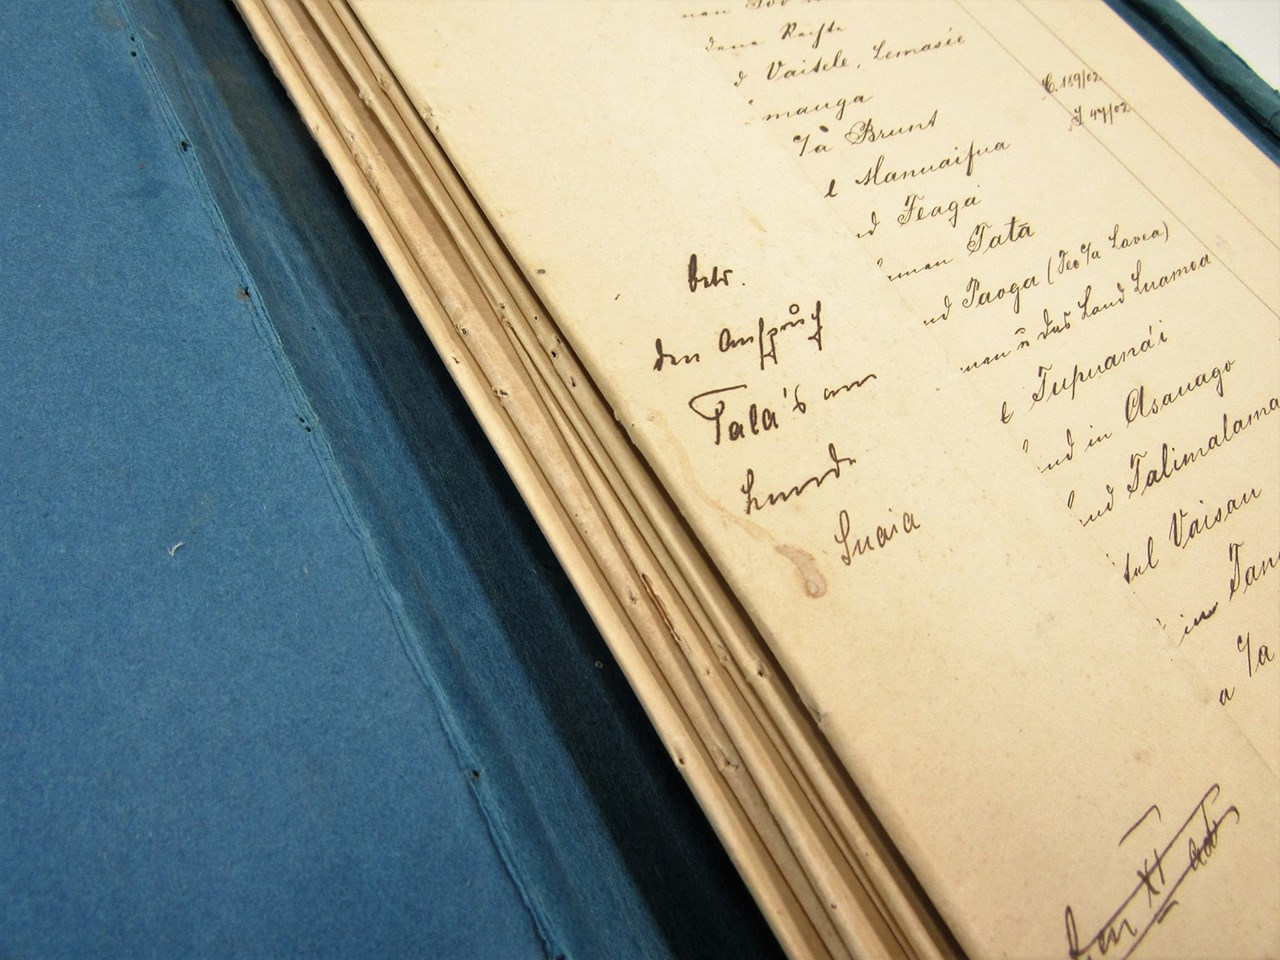 Photograph of pages the bound spine of an old register with hand written script